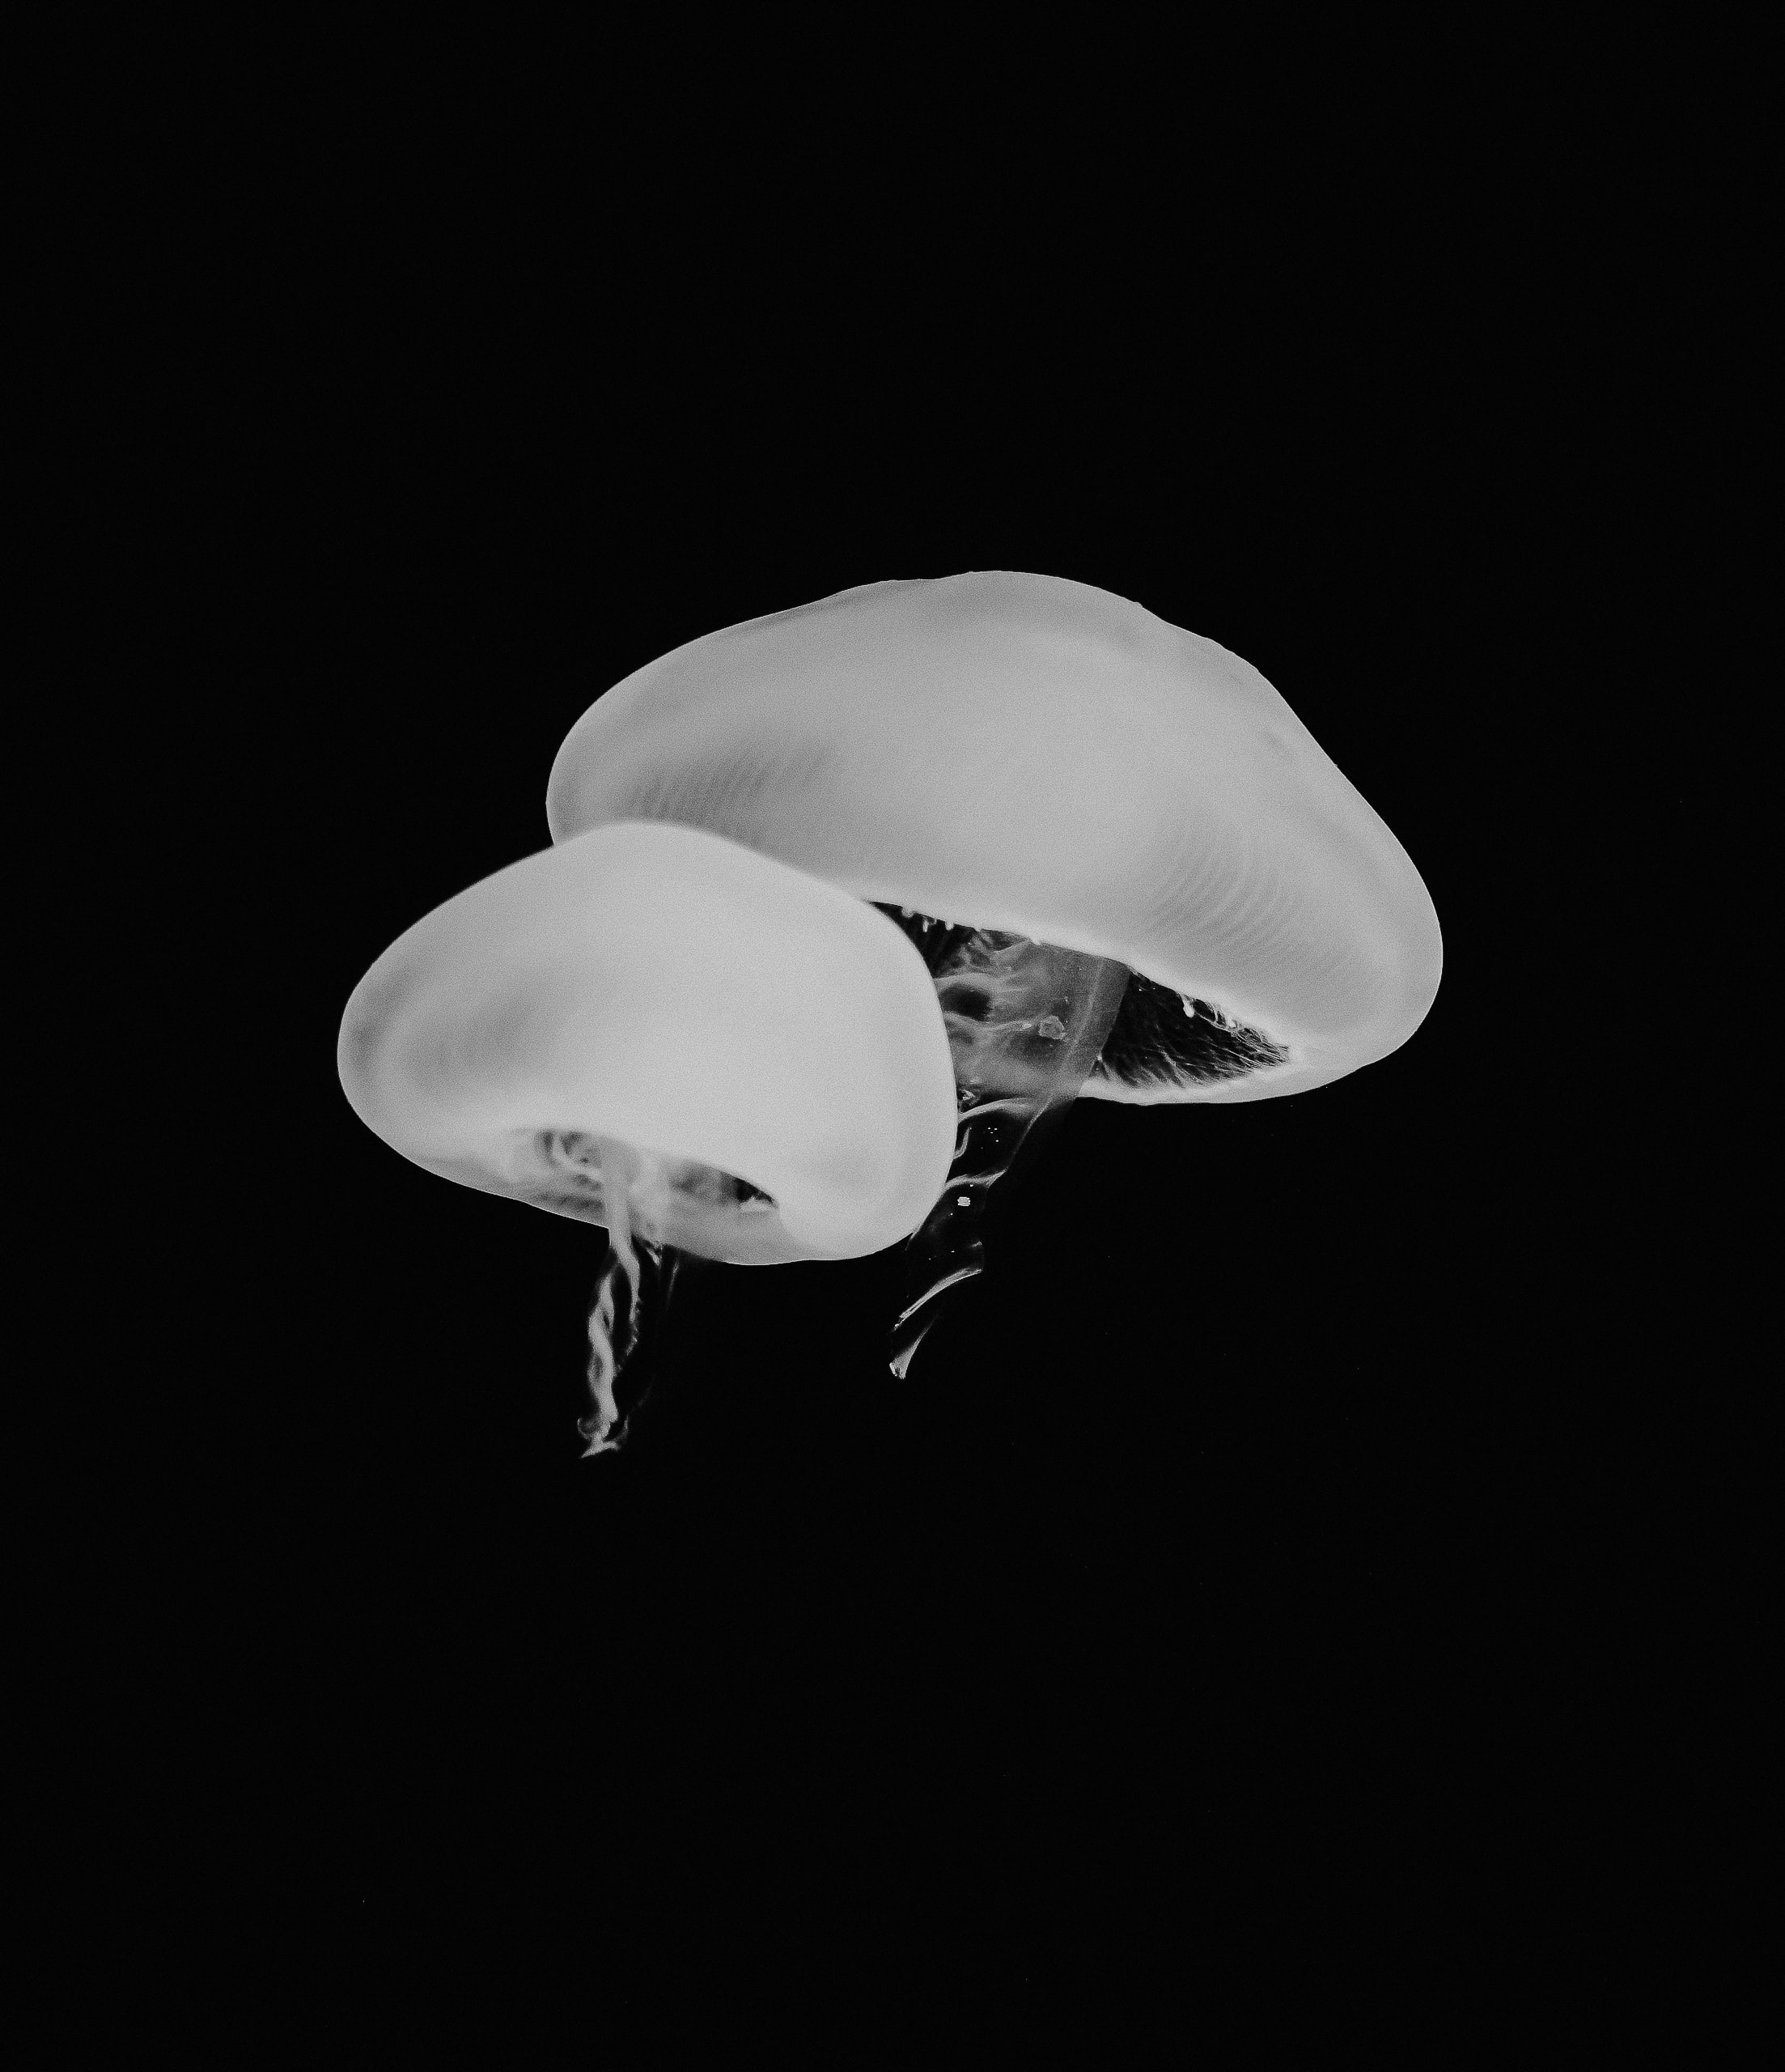 grayscale photo of jellyfish